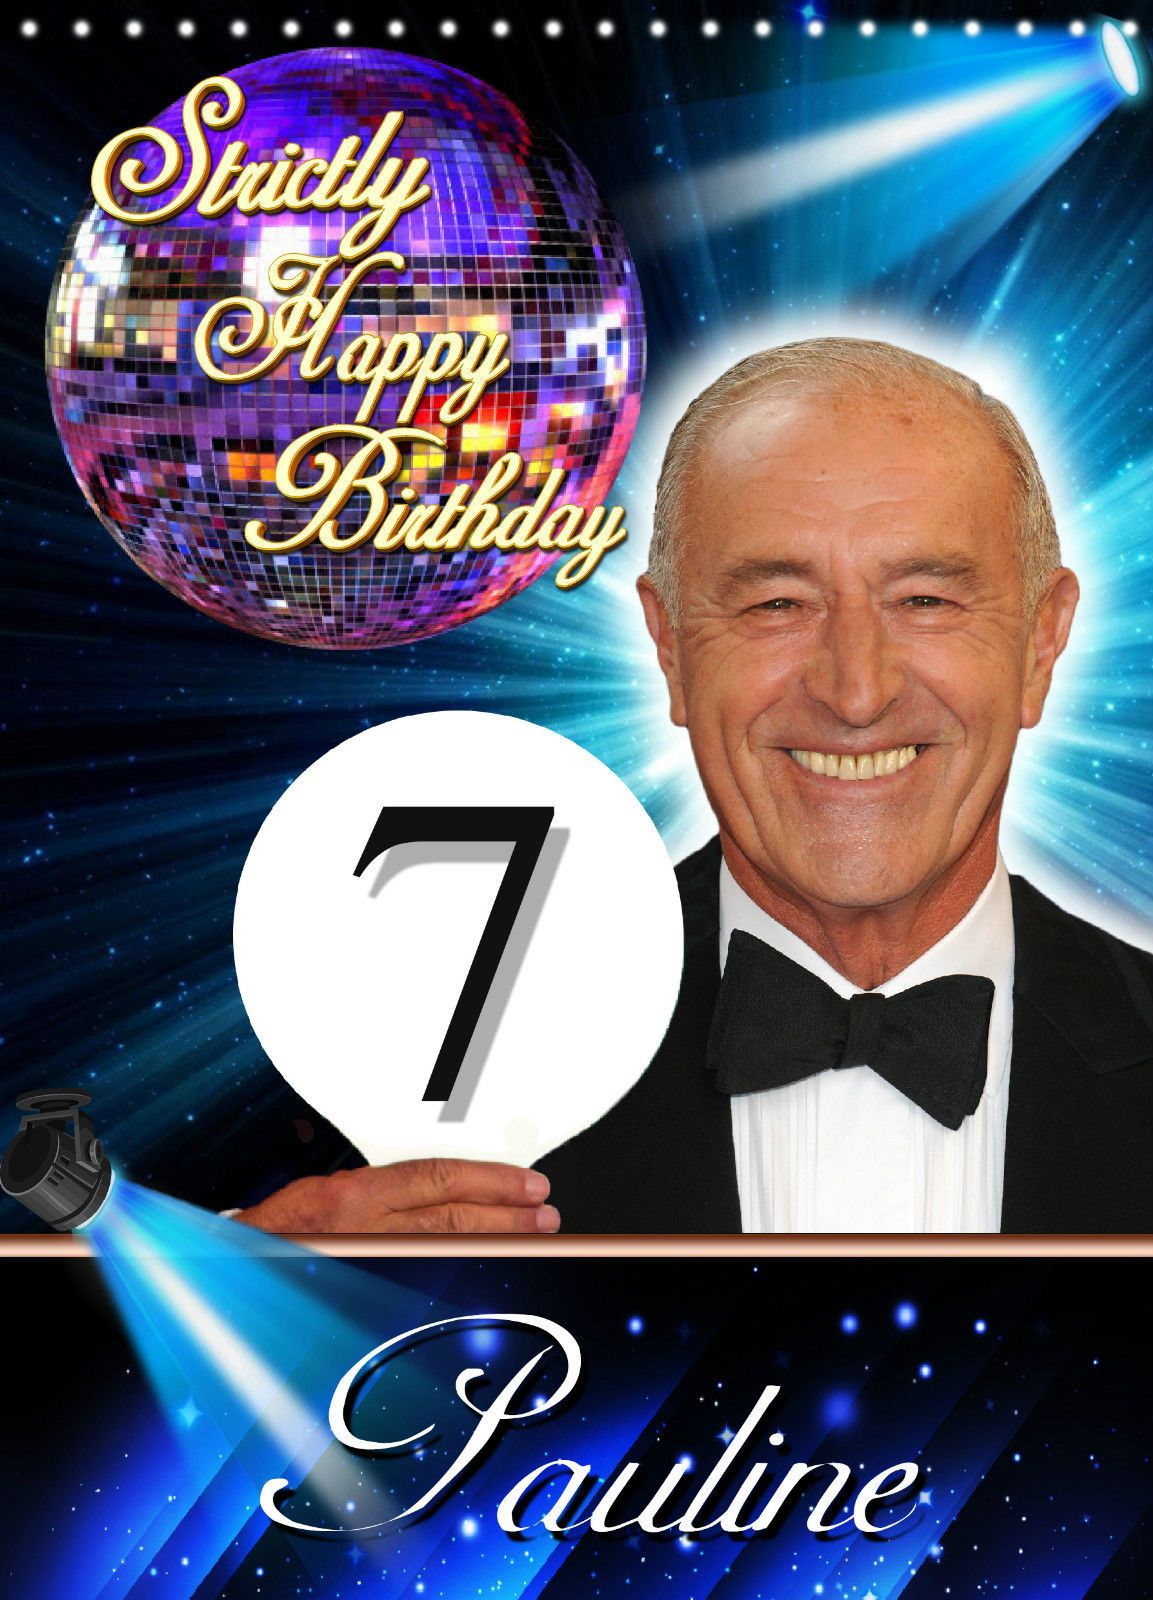 Strictly Come Dancing With Images Strictly Come Dancing Strictly Come Dancing With The Stars